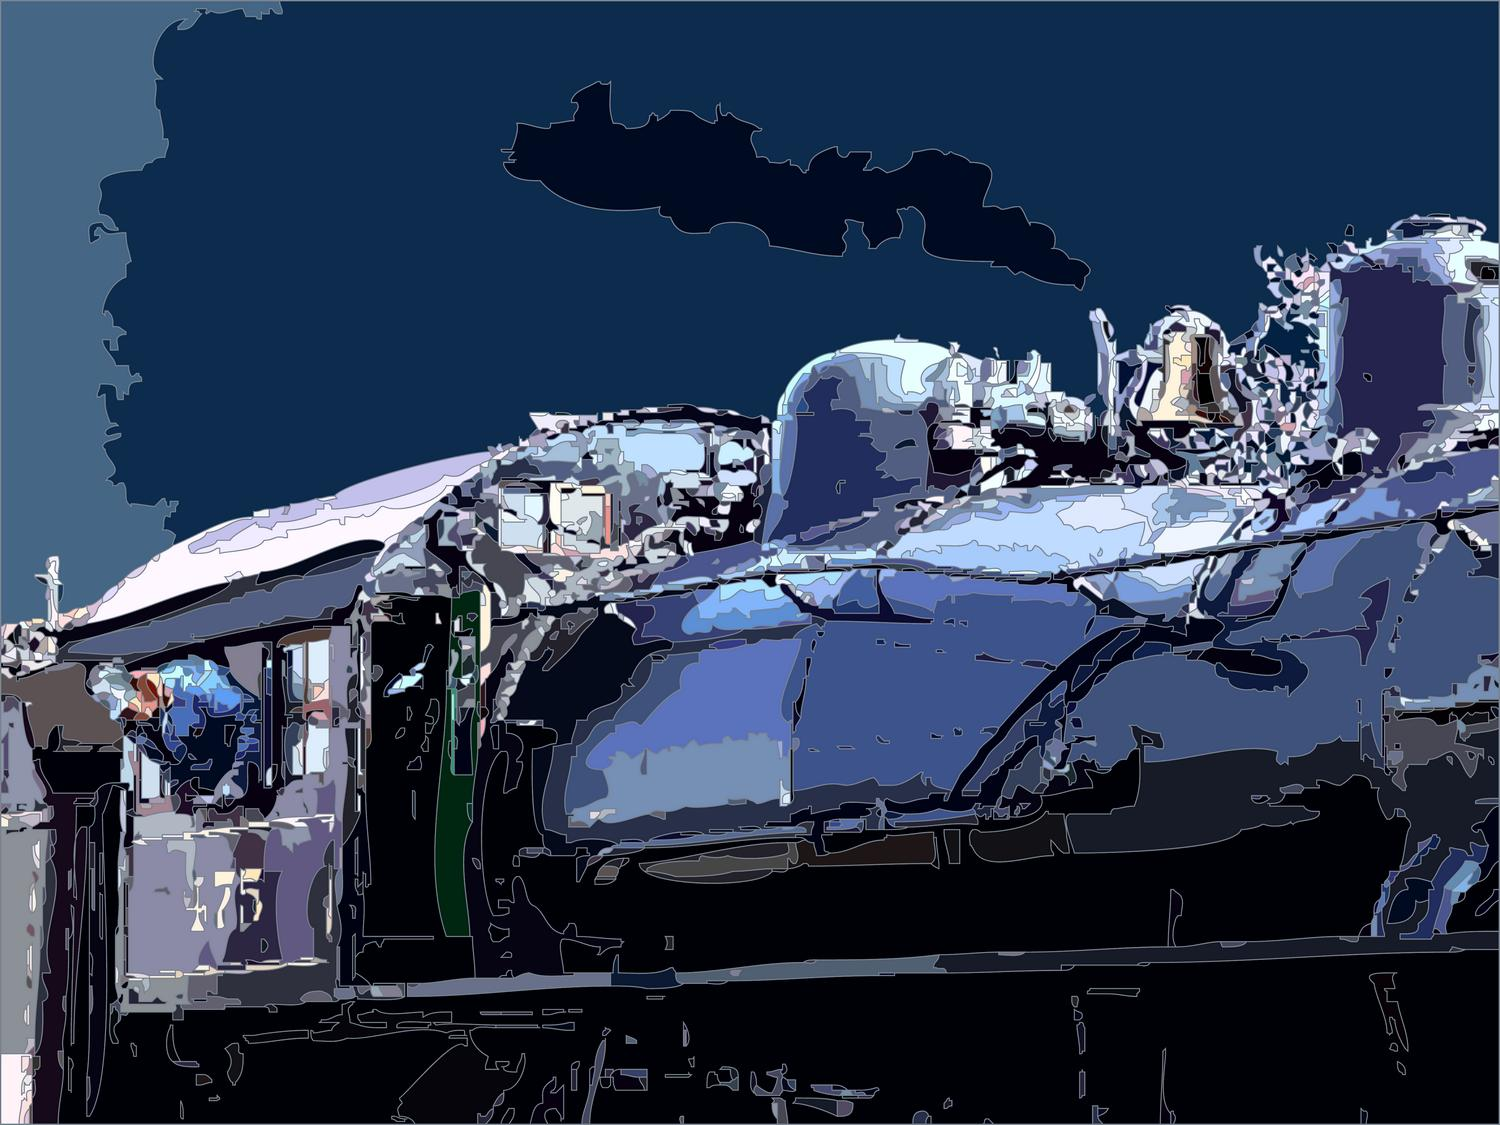 - Blue train - Techno-Impressionist Museum - Techno-Impressionism - art - beautiful - photo photography picture - by Tony Karp